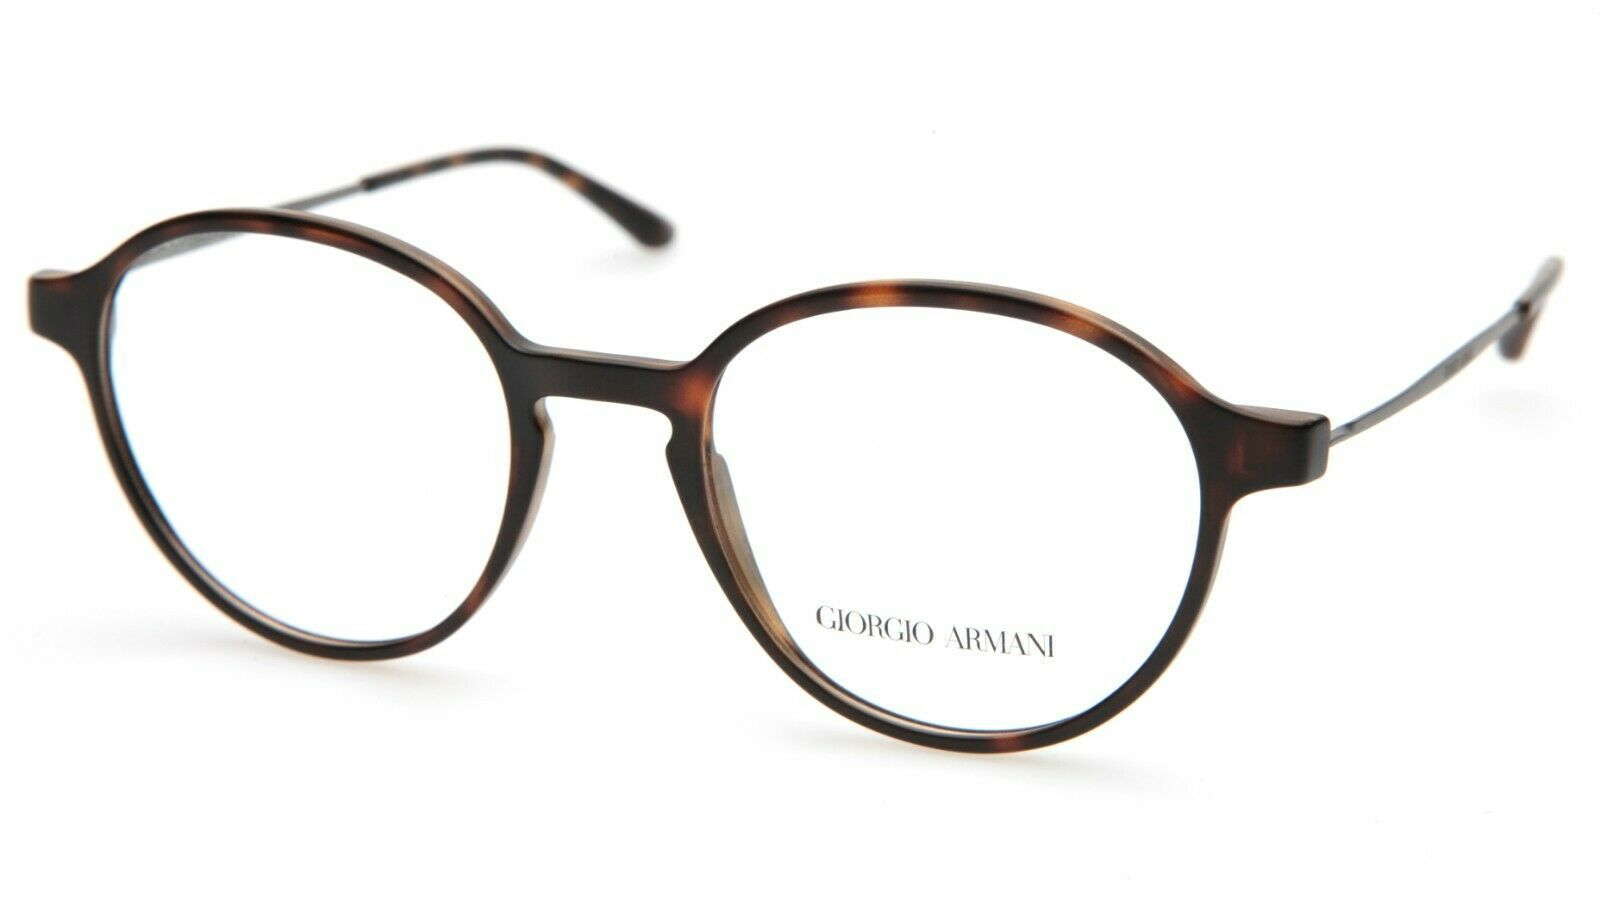 Primary image for New GIORGIO ARMANI AR7071 5089 Havana EYEGLASSES FRAME 49-19-145mm B44mm Italy